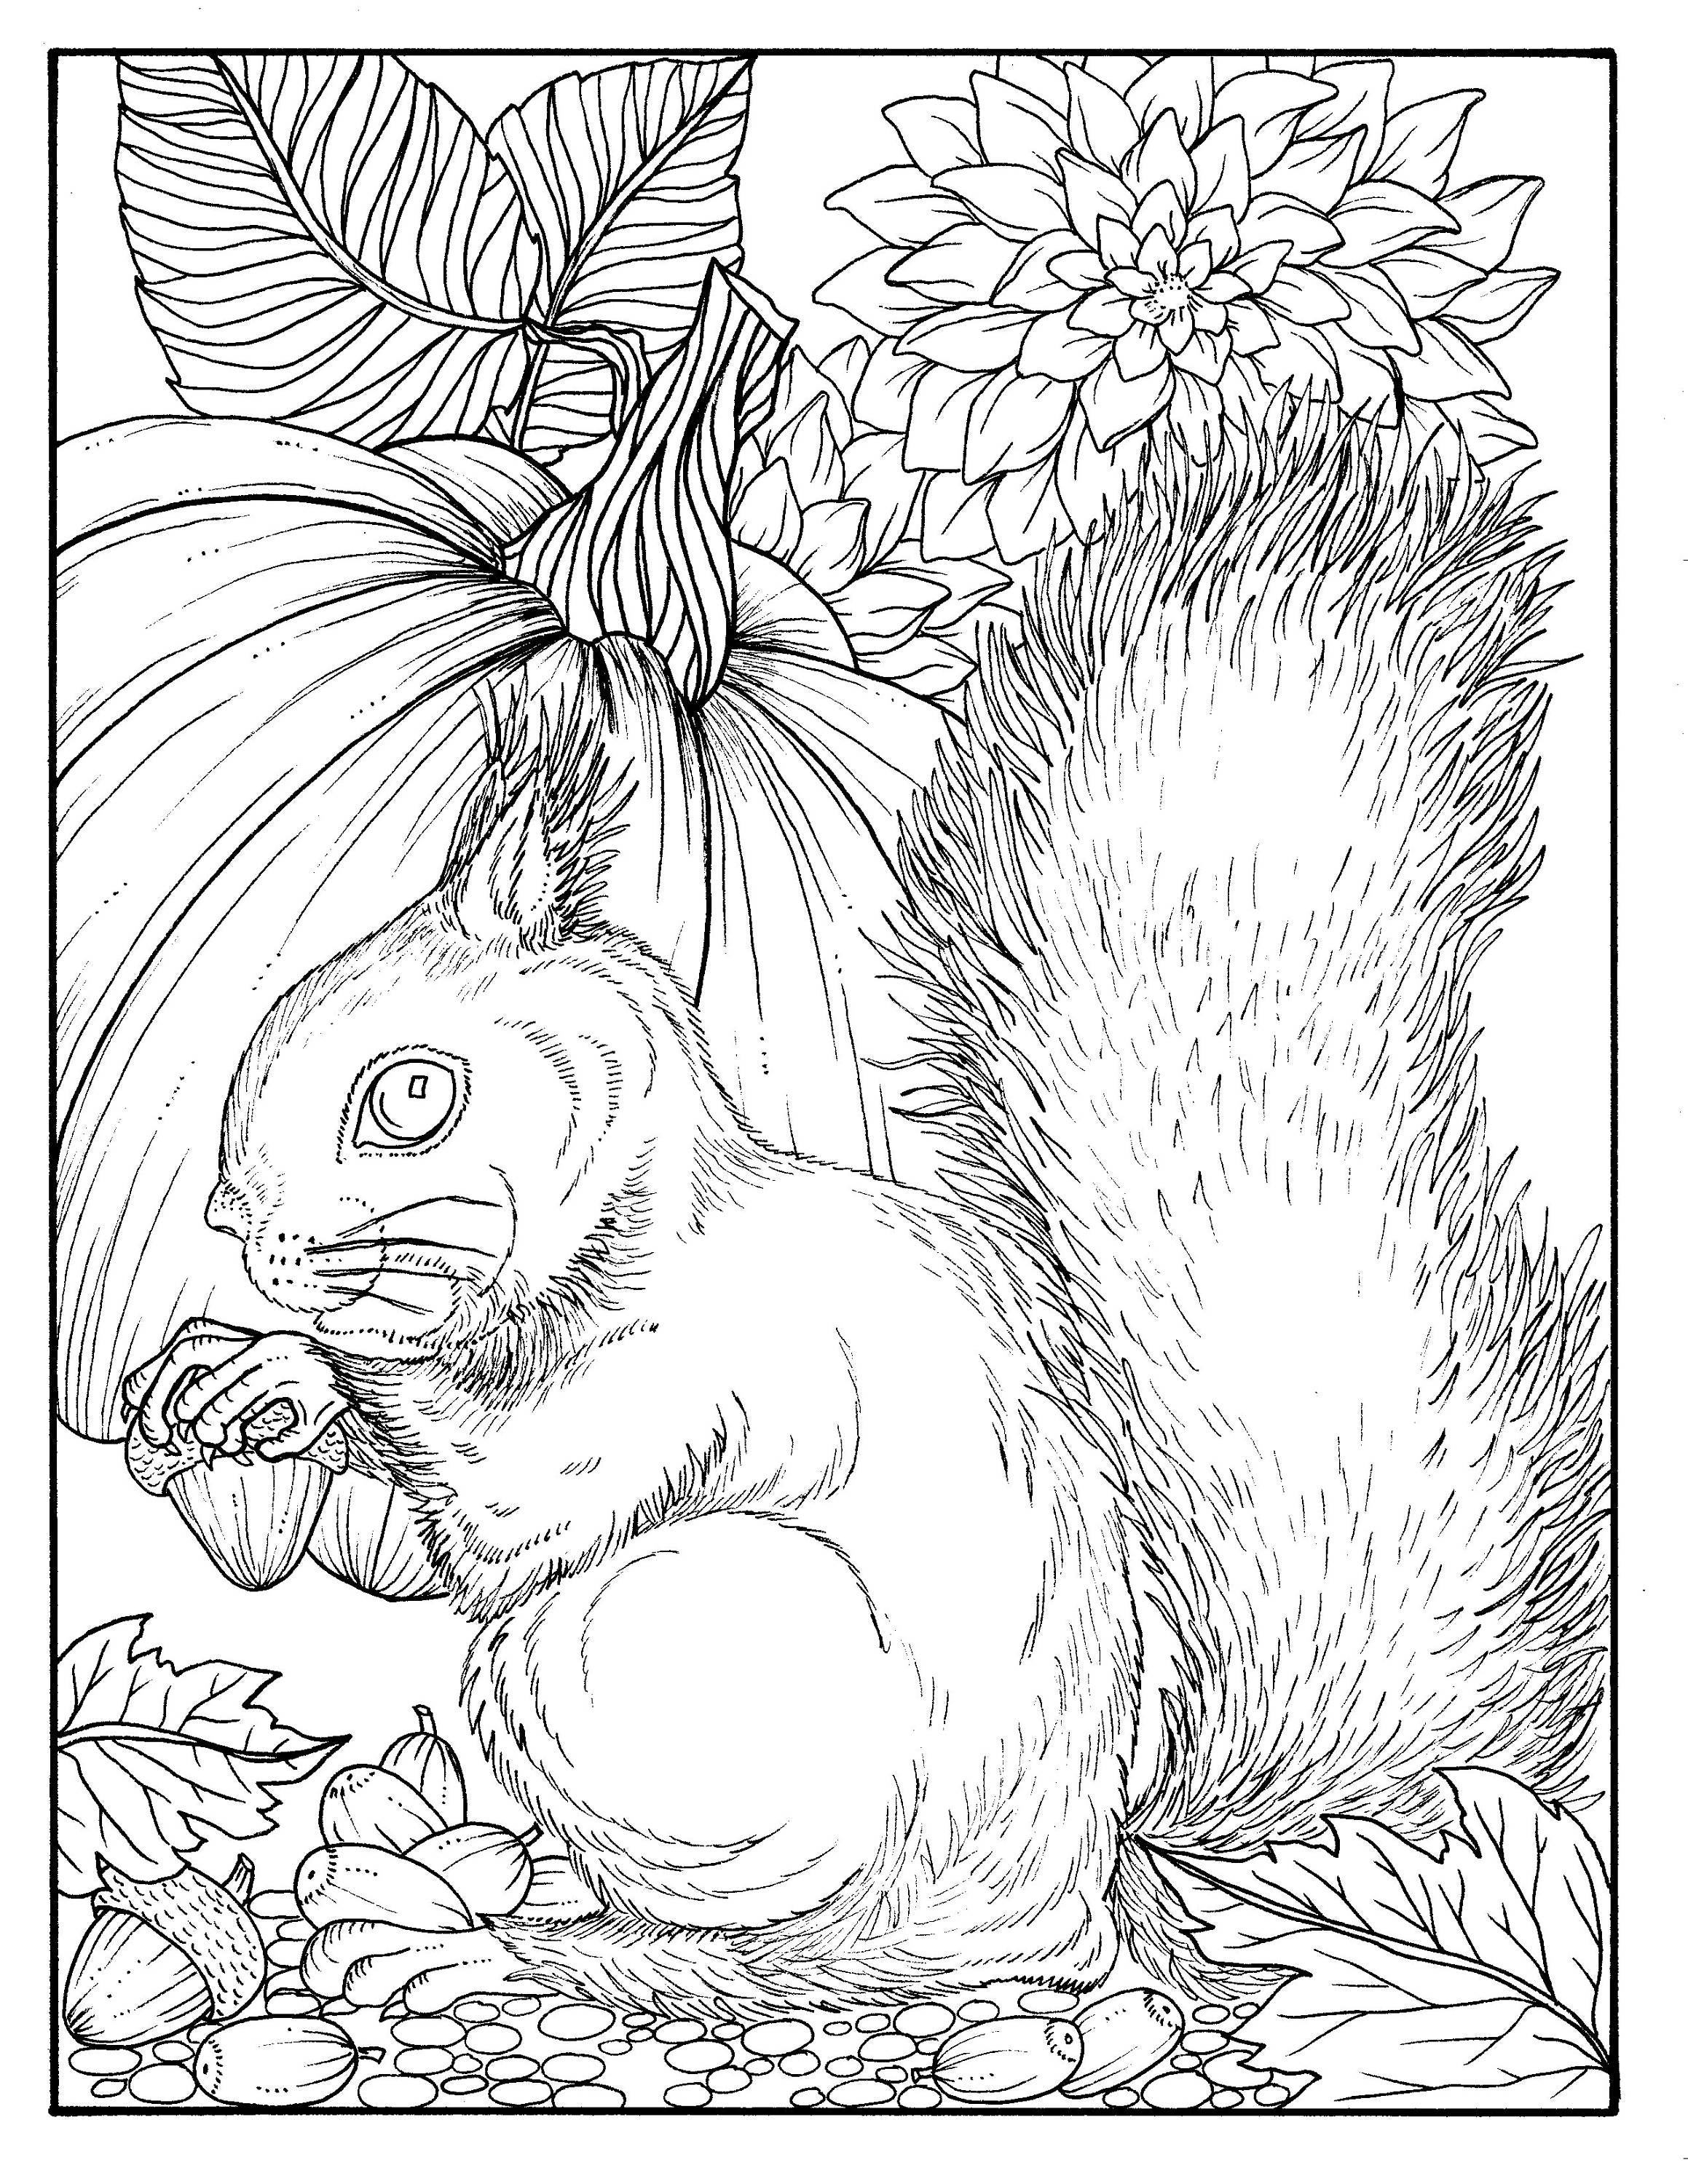 Fall Squirrel Digital Coloring Page Digi Stamp Thanksgiving | Etsy